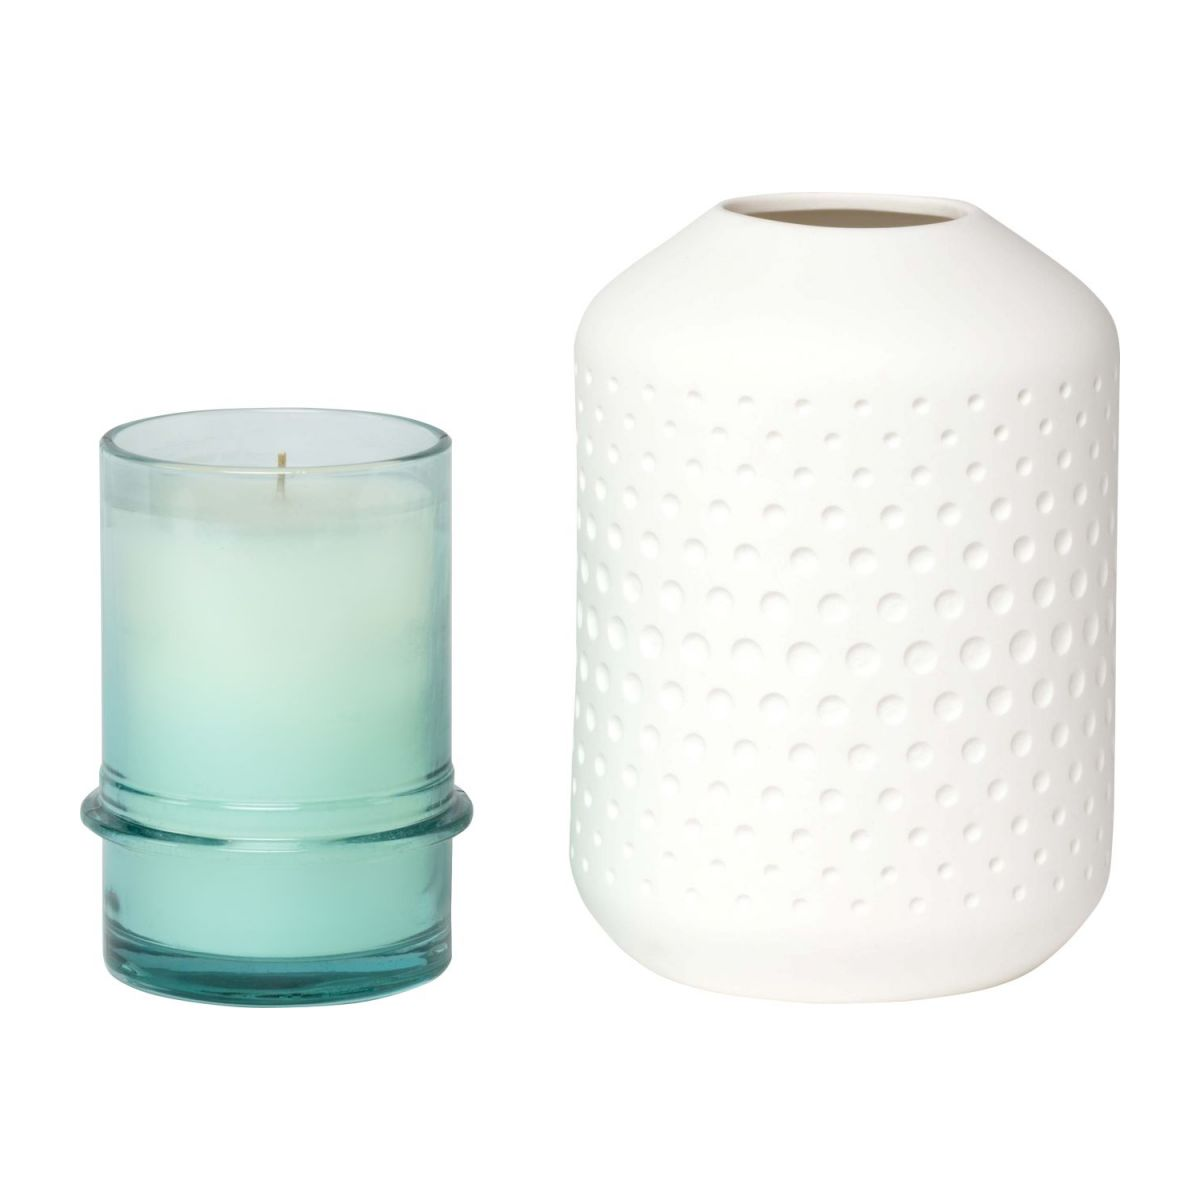 Palais scented candle gift set n°5